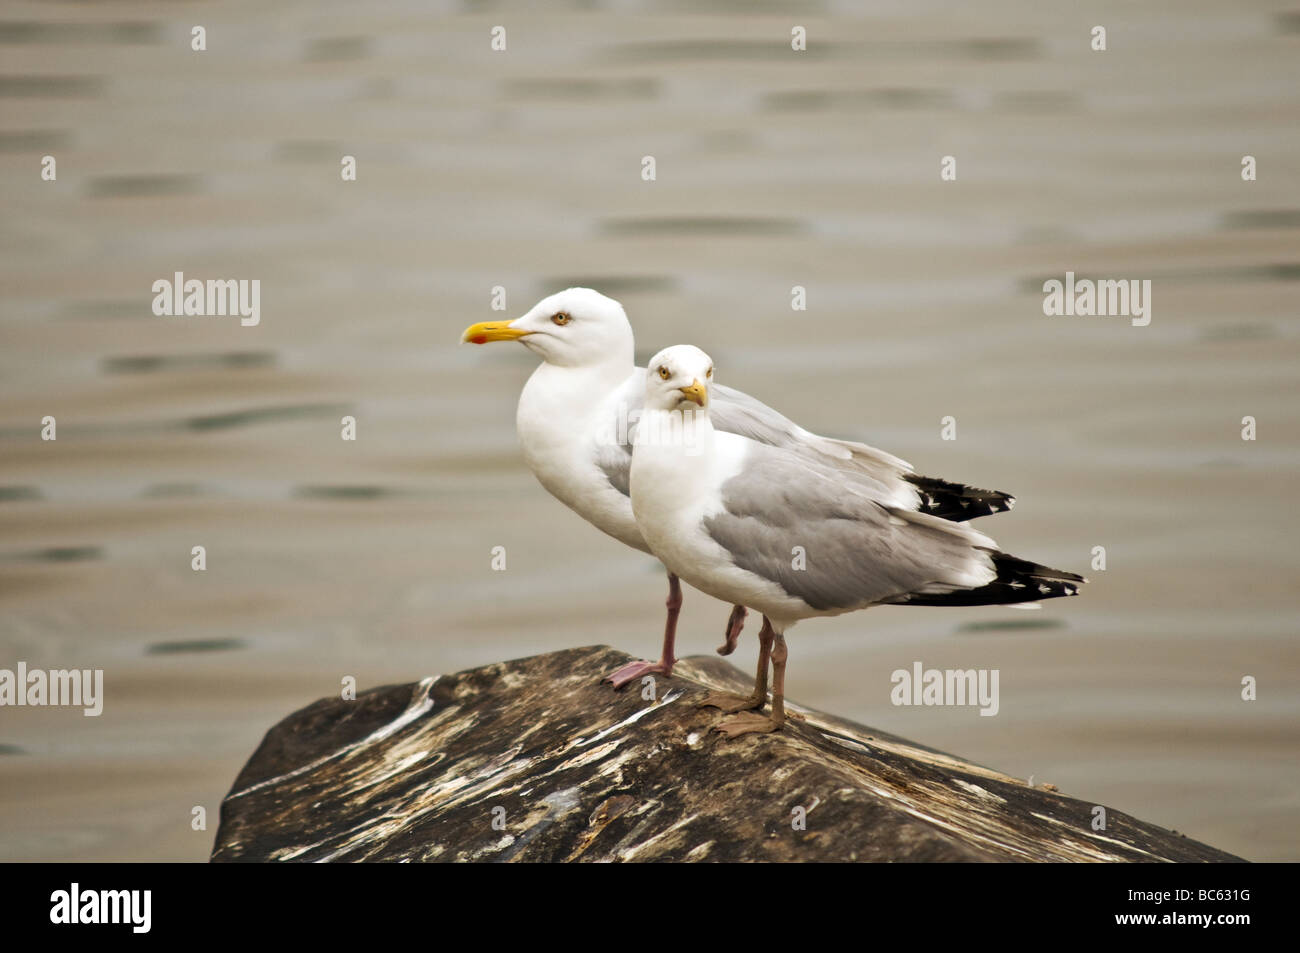 Two Herring Gulls standing on a boat with a dirty tarpaulin cover at Stoke Gabriel Devon - Stock Image